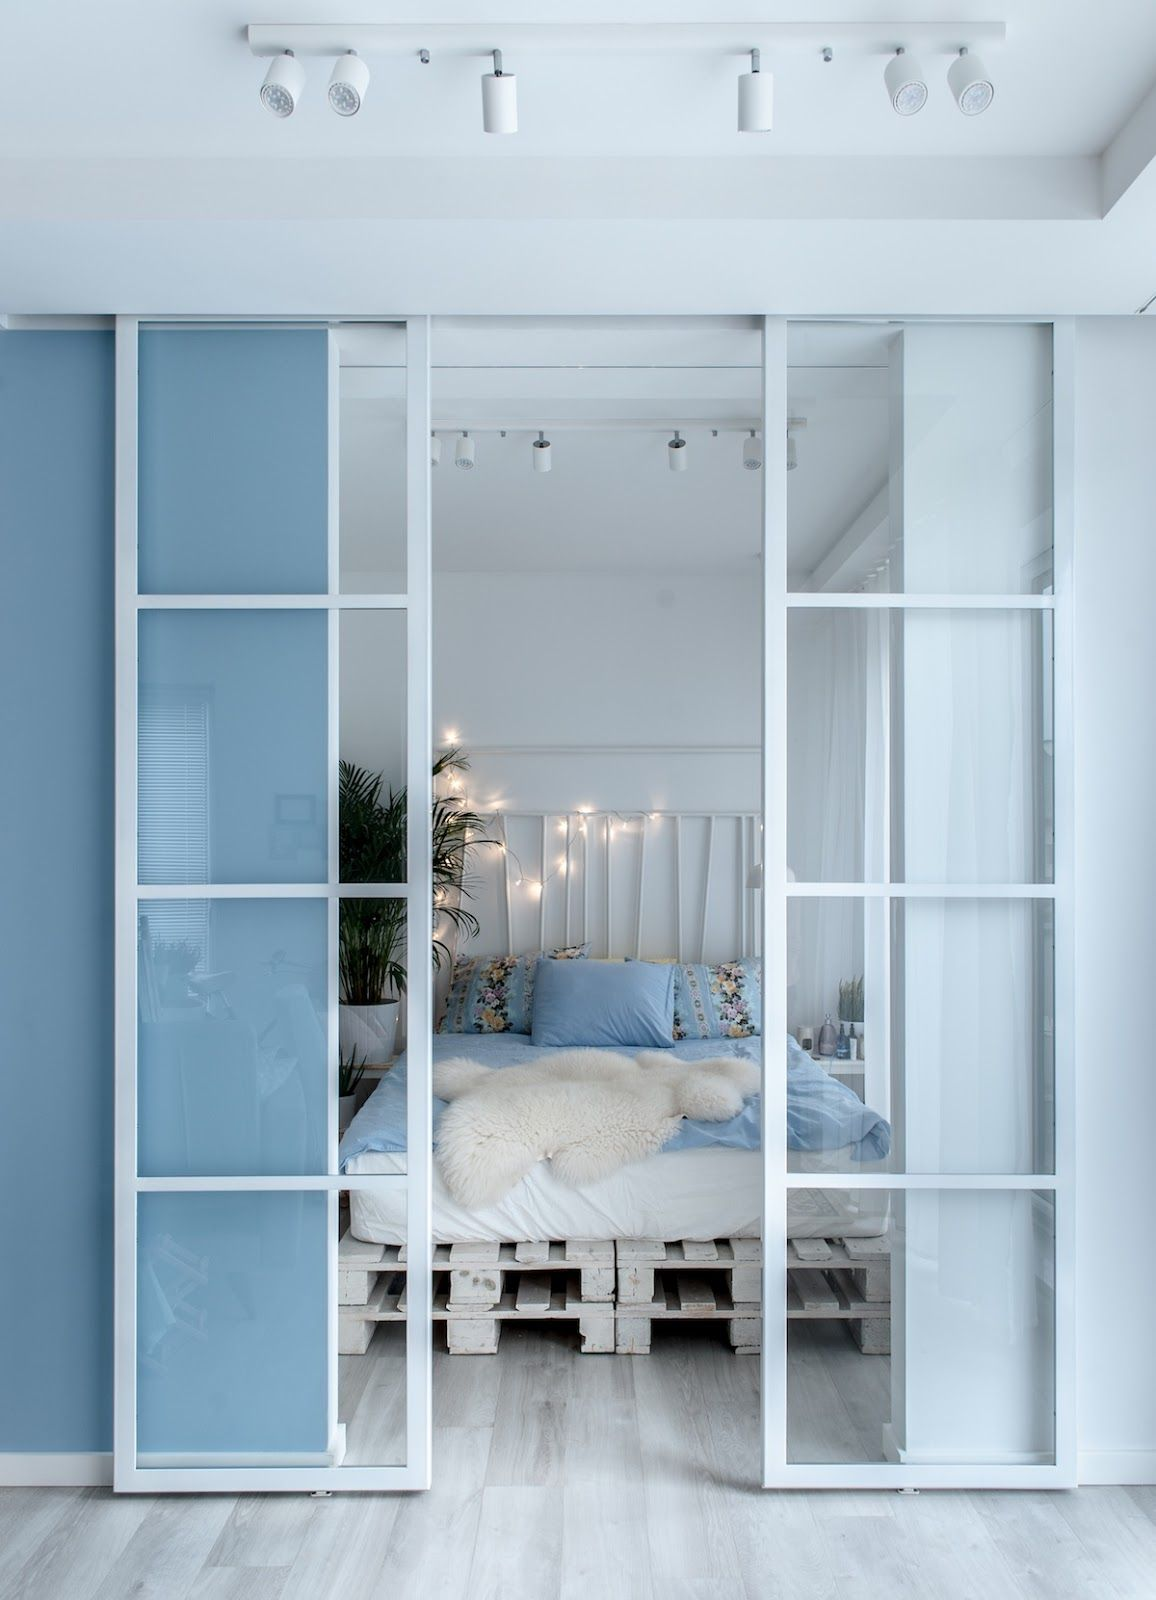 studio apartment, blue partition, glass sliding door, white wooden crate, blue bedding